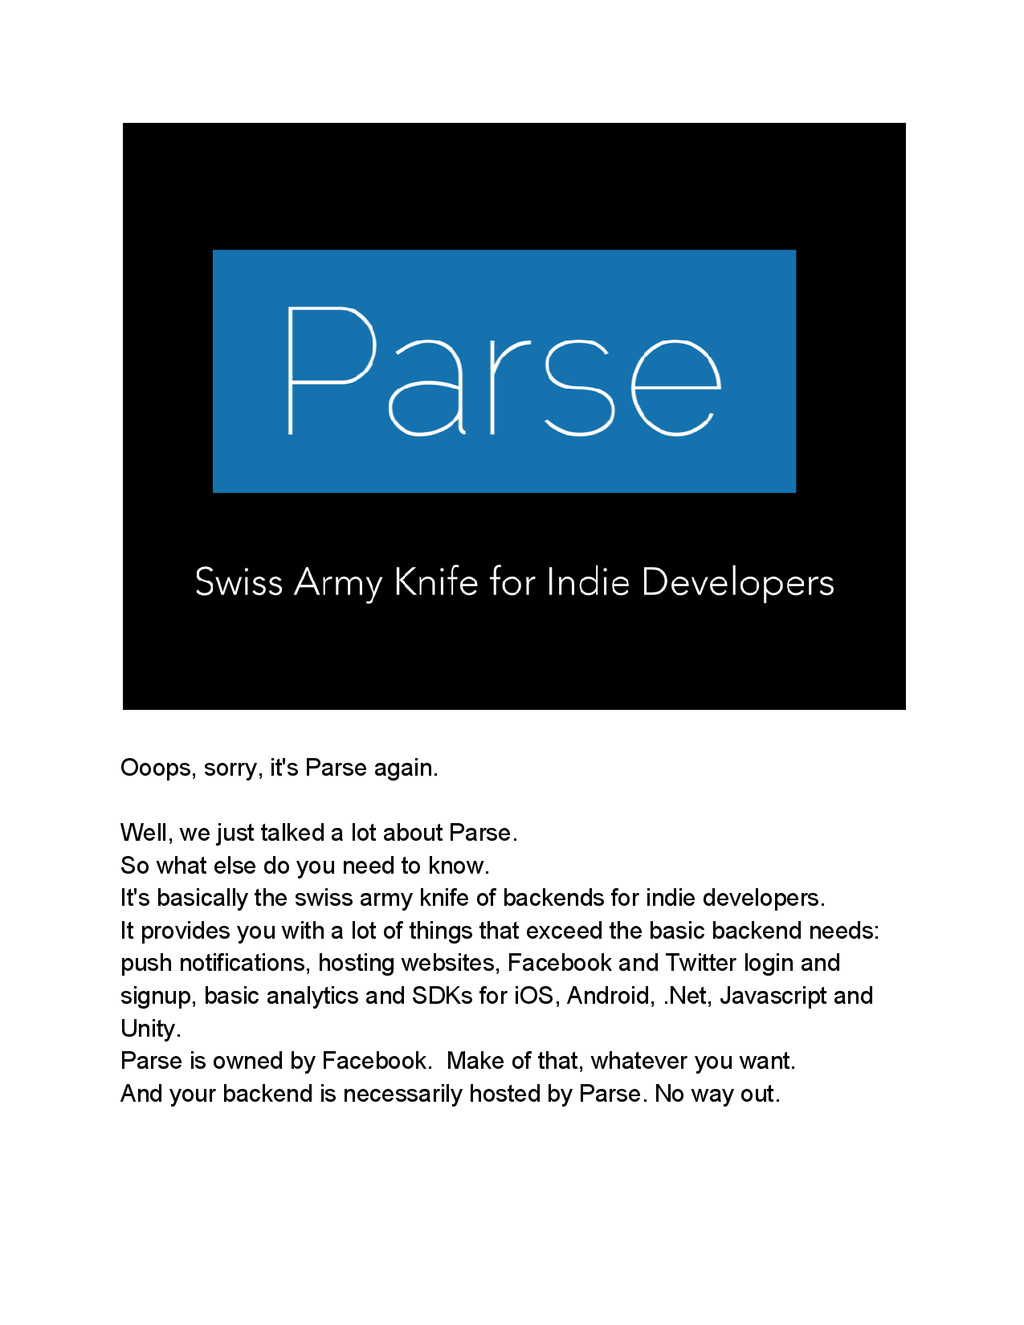 Ooops, sorry, it's Parse again. Well, we just t...